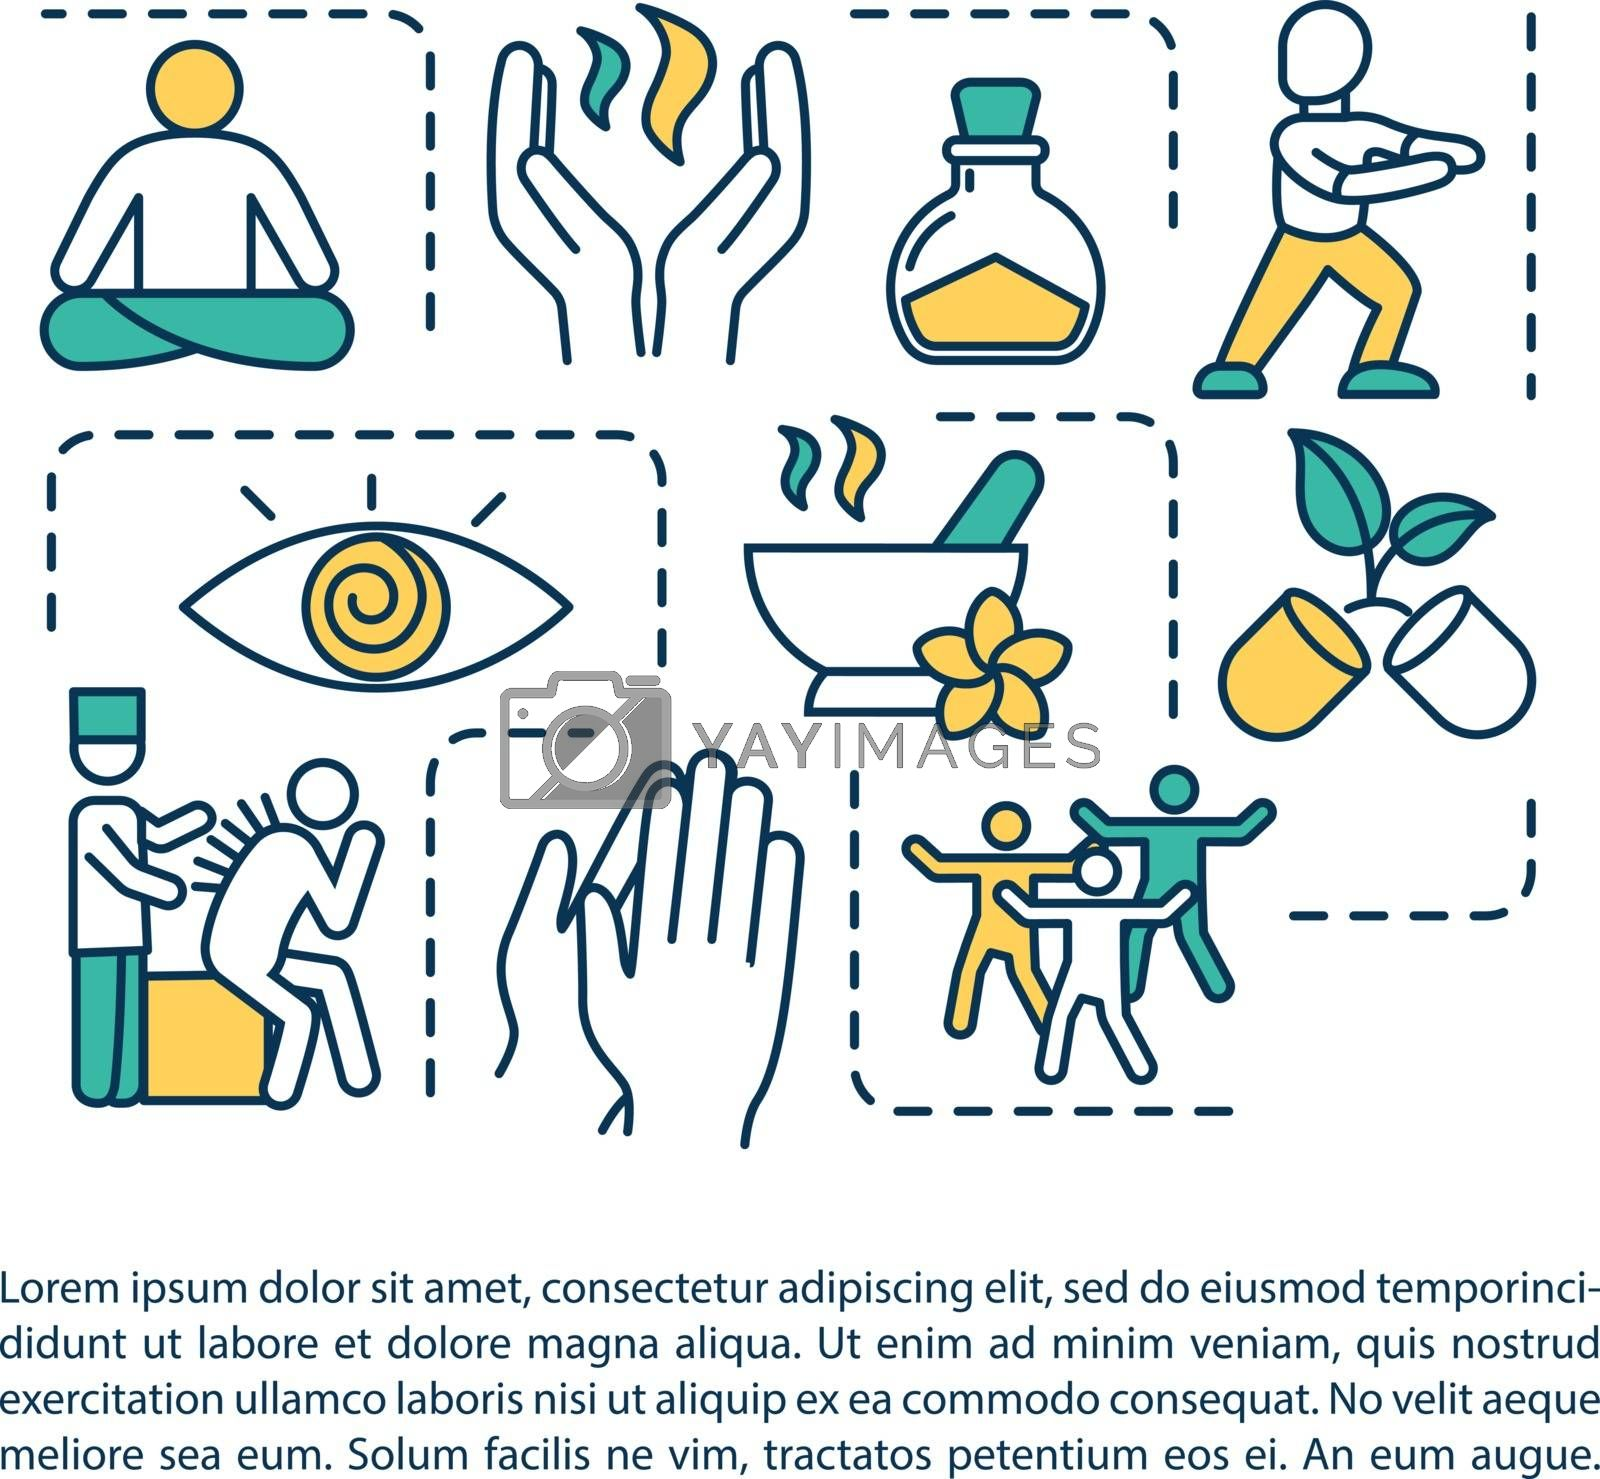 Chinese alternative medicine practices concept icon with text. Acupuncture, aromatherapy, meditation. PPT page vector template. Brochure, magazine, booklet design element with linear illustrations by bsd